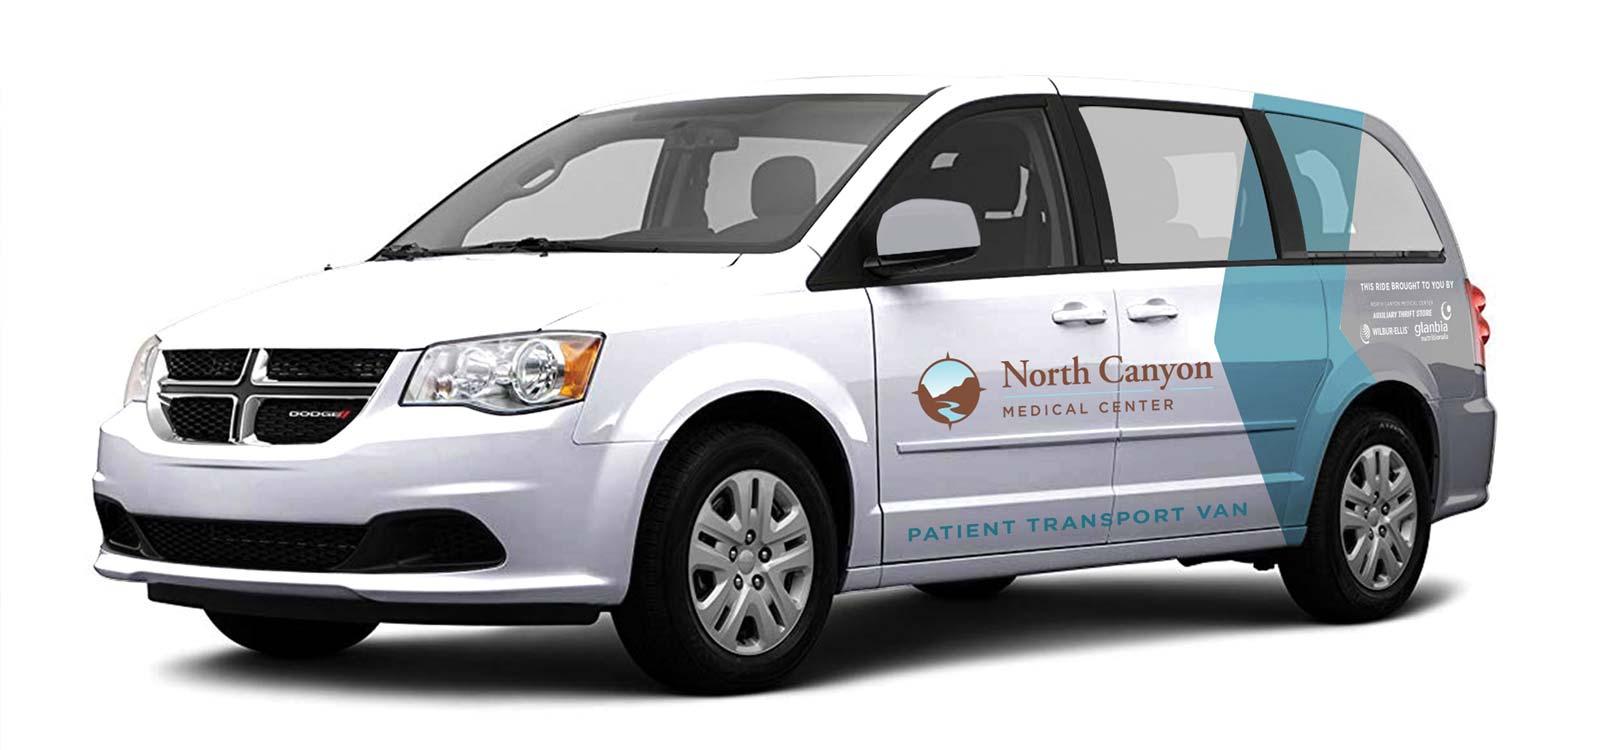 NCMC Patient Transportation Van